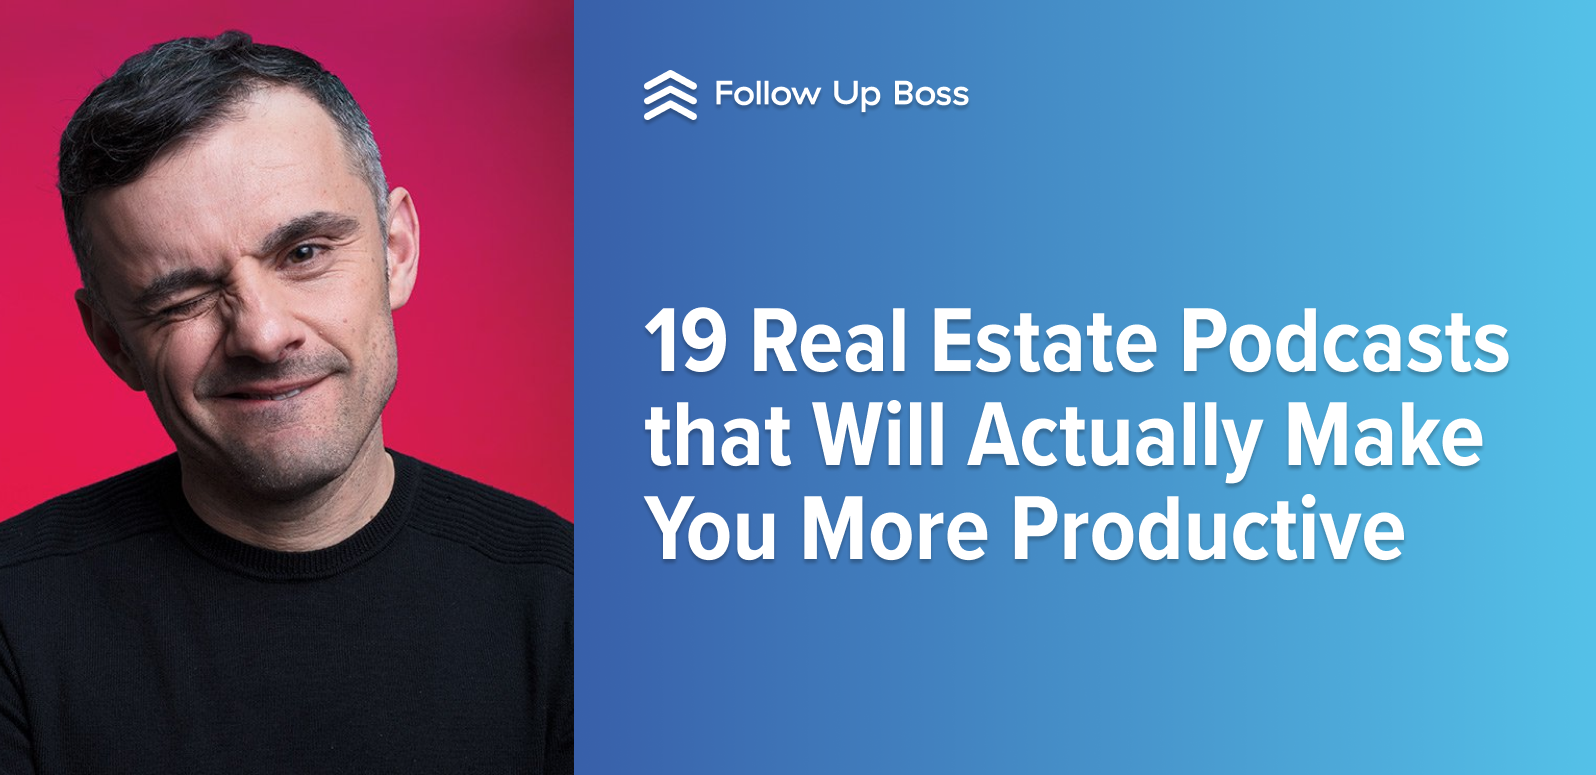 19 Real Estate Podcasts that Will Actually Make You More Productive